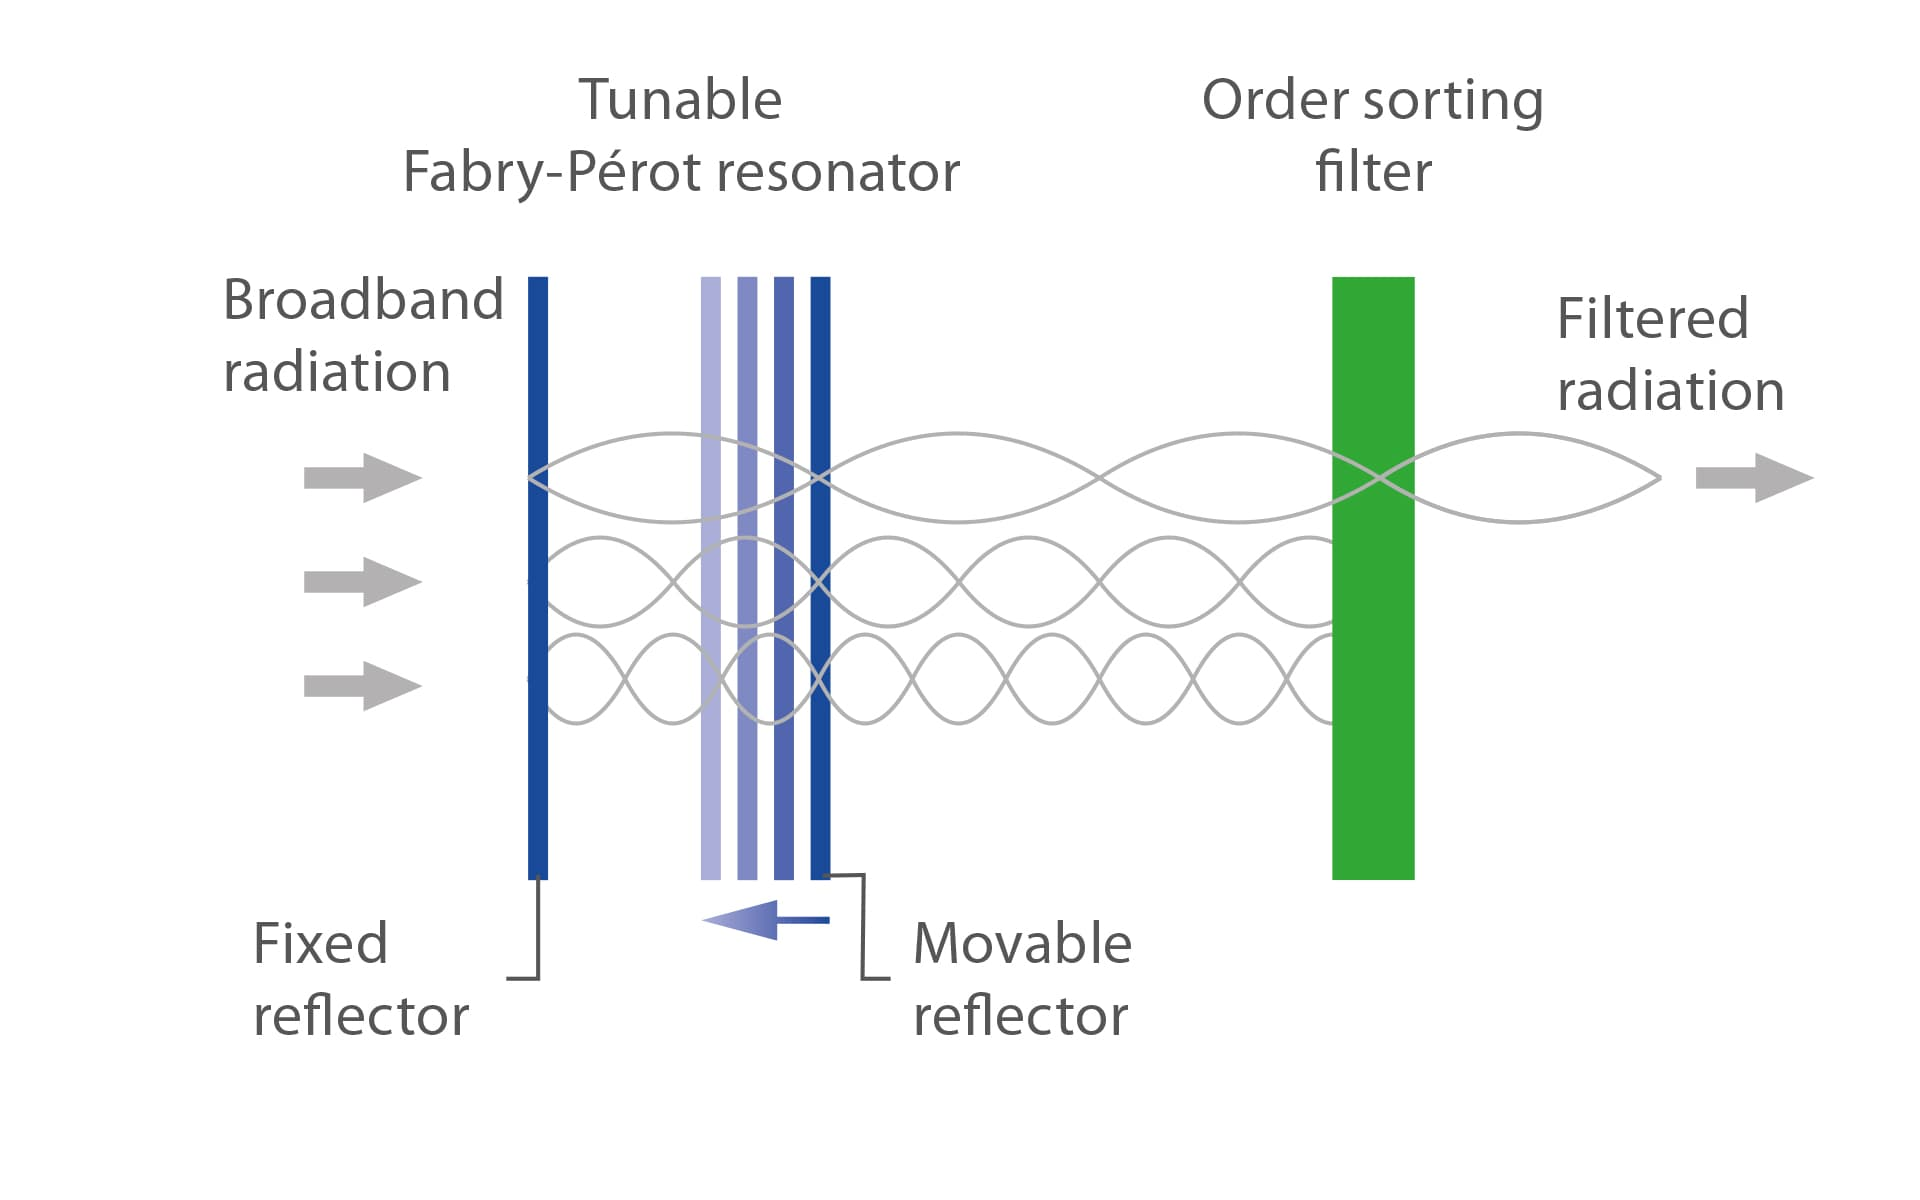 Basic set-up and operation principle of a Fabry-Pérot filter